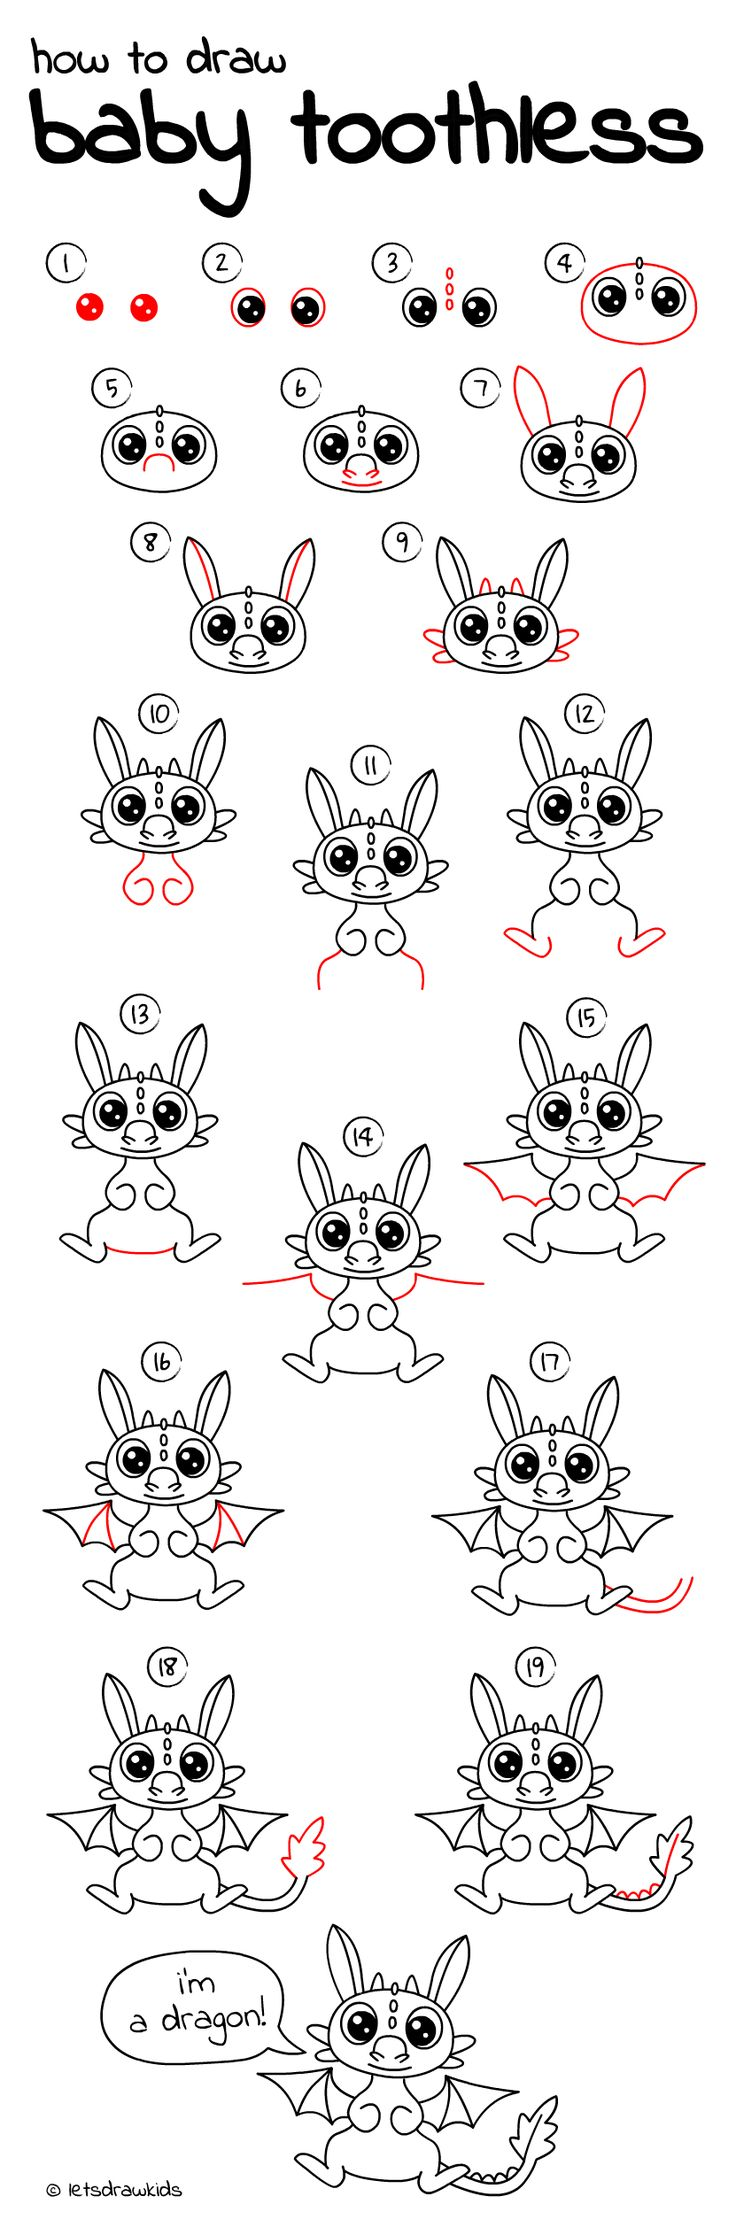 How To Draw Baby Toothless Easy Drawing, Step By Step, Perfect For Kids